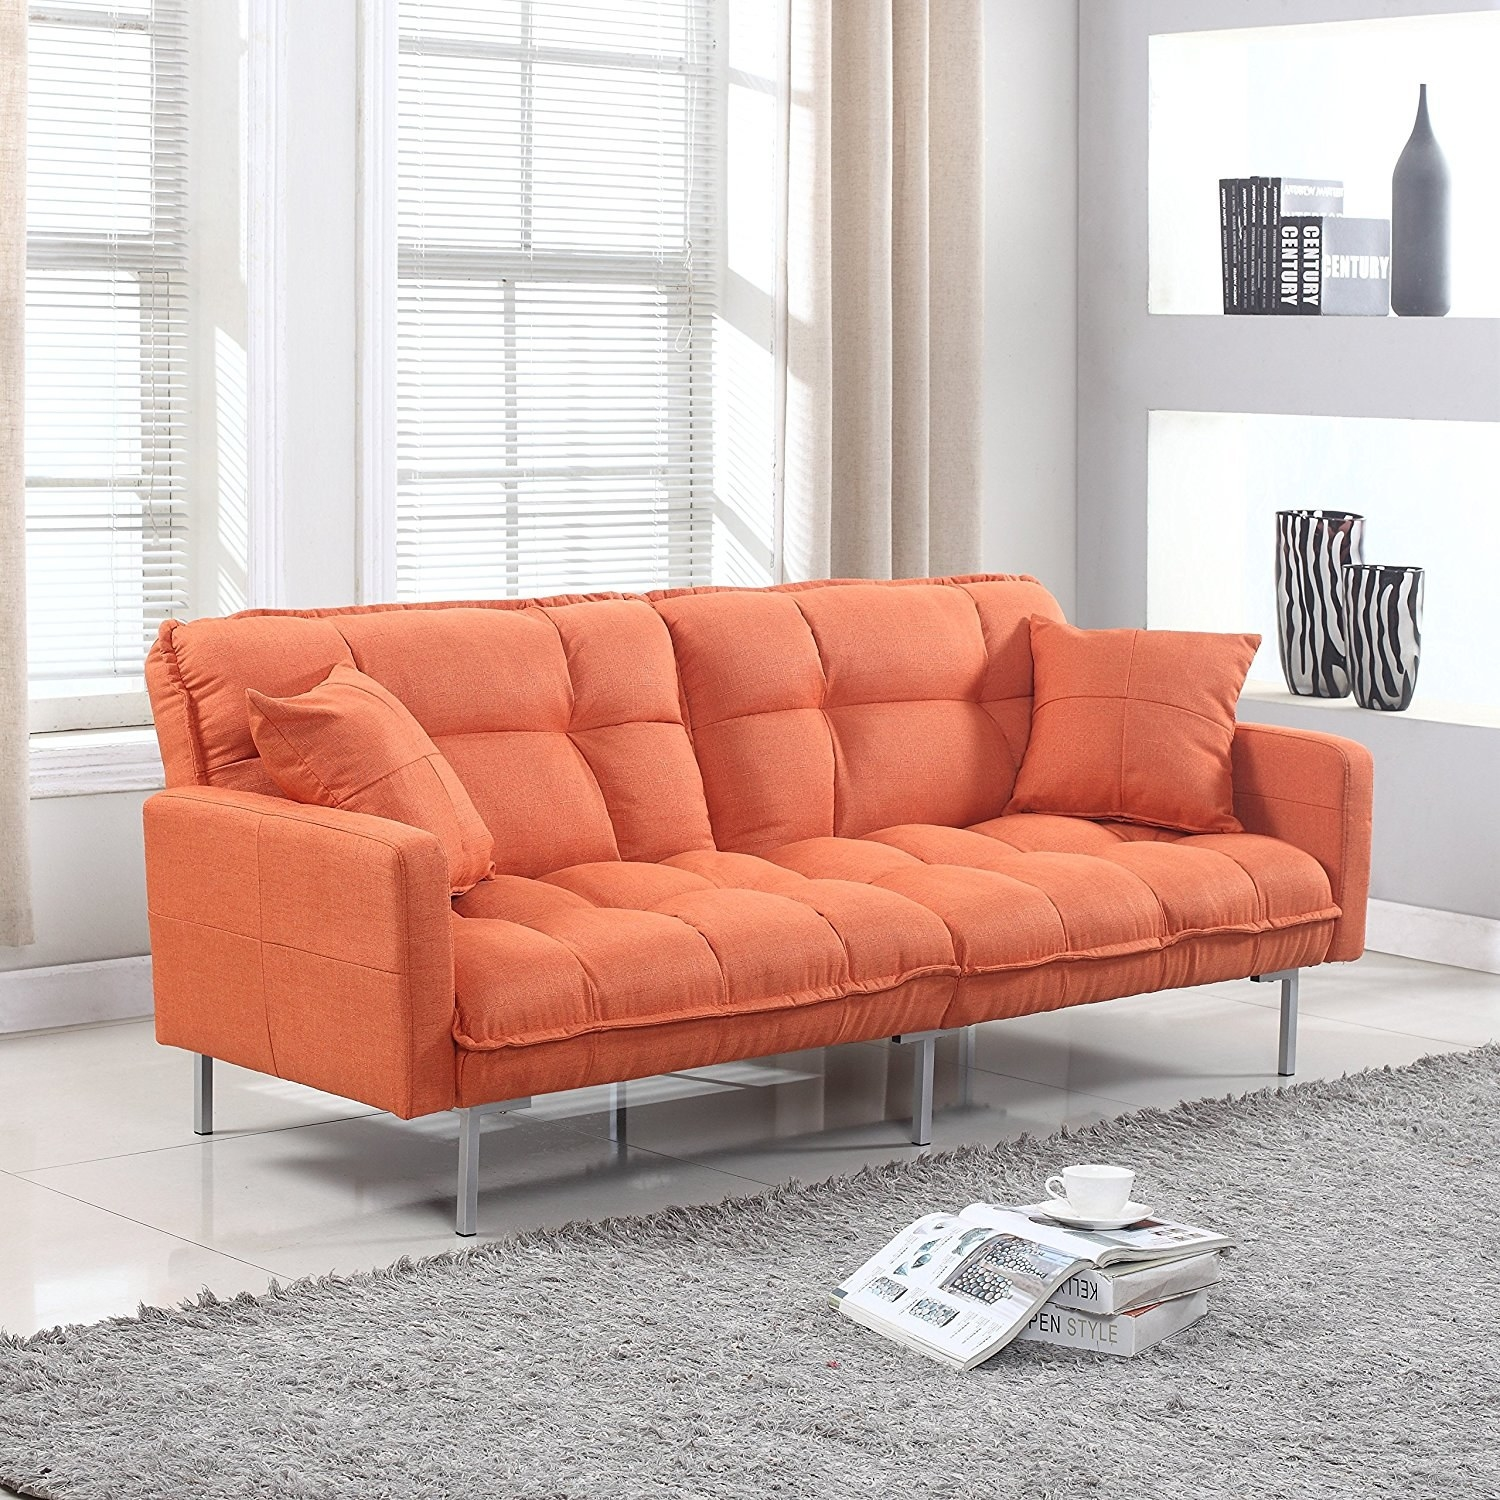 Promising Review: U0026quot;This Couch Is An Amazing Deal. It Goes Great With